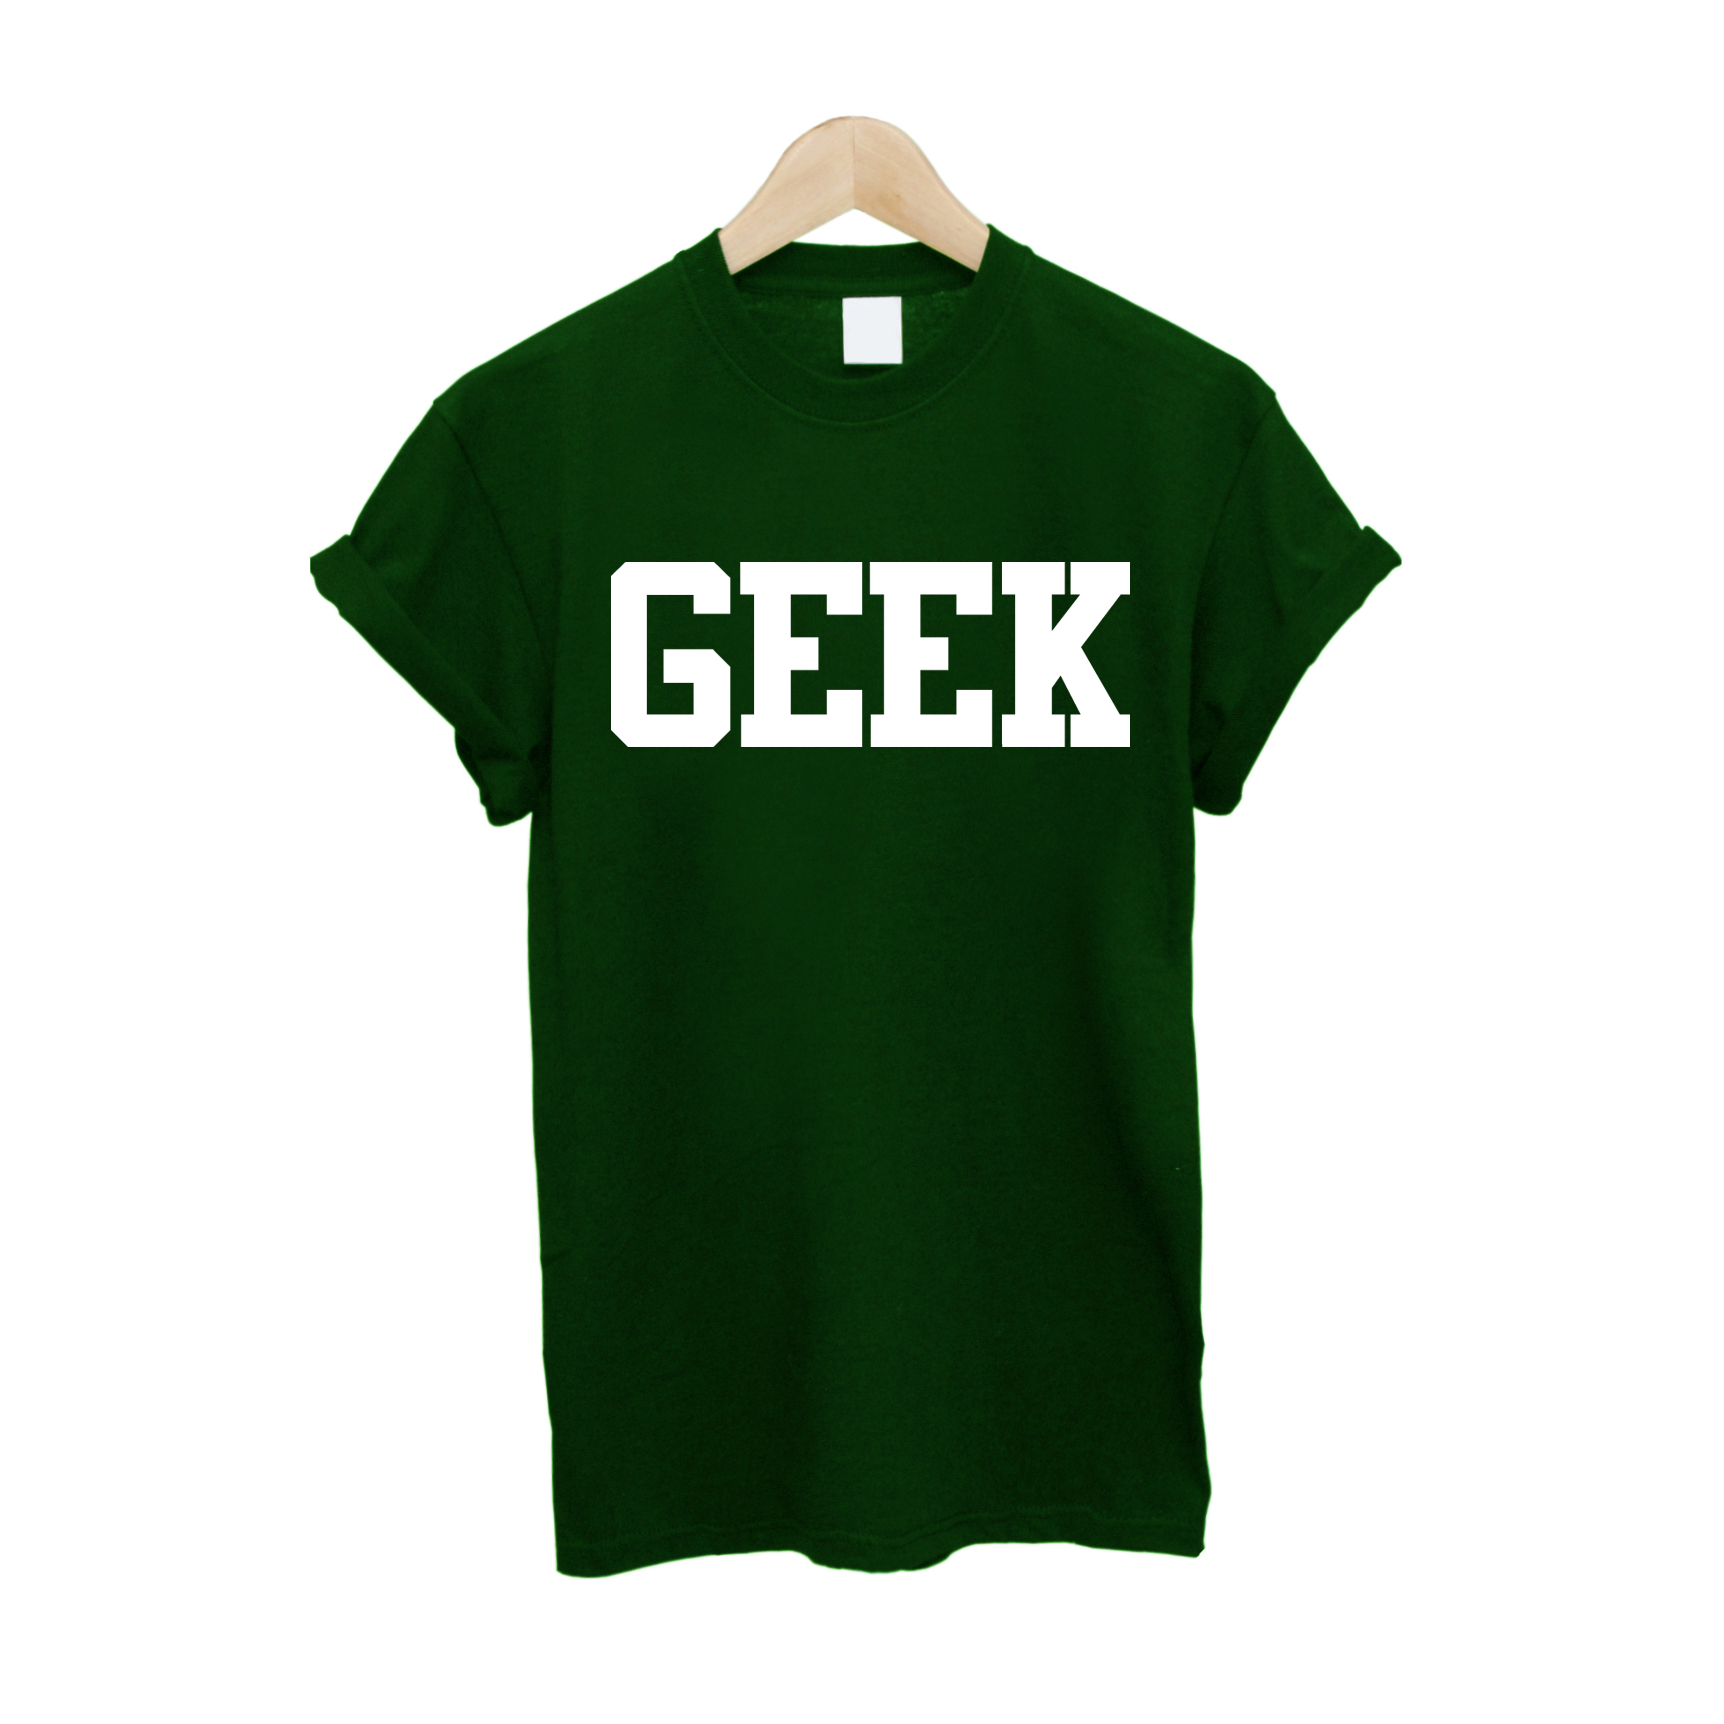 Geek T Shirt £10   Free UK Delivery - #TeeIsland